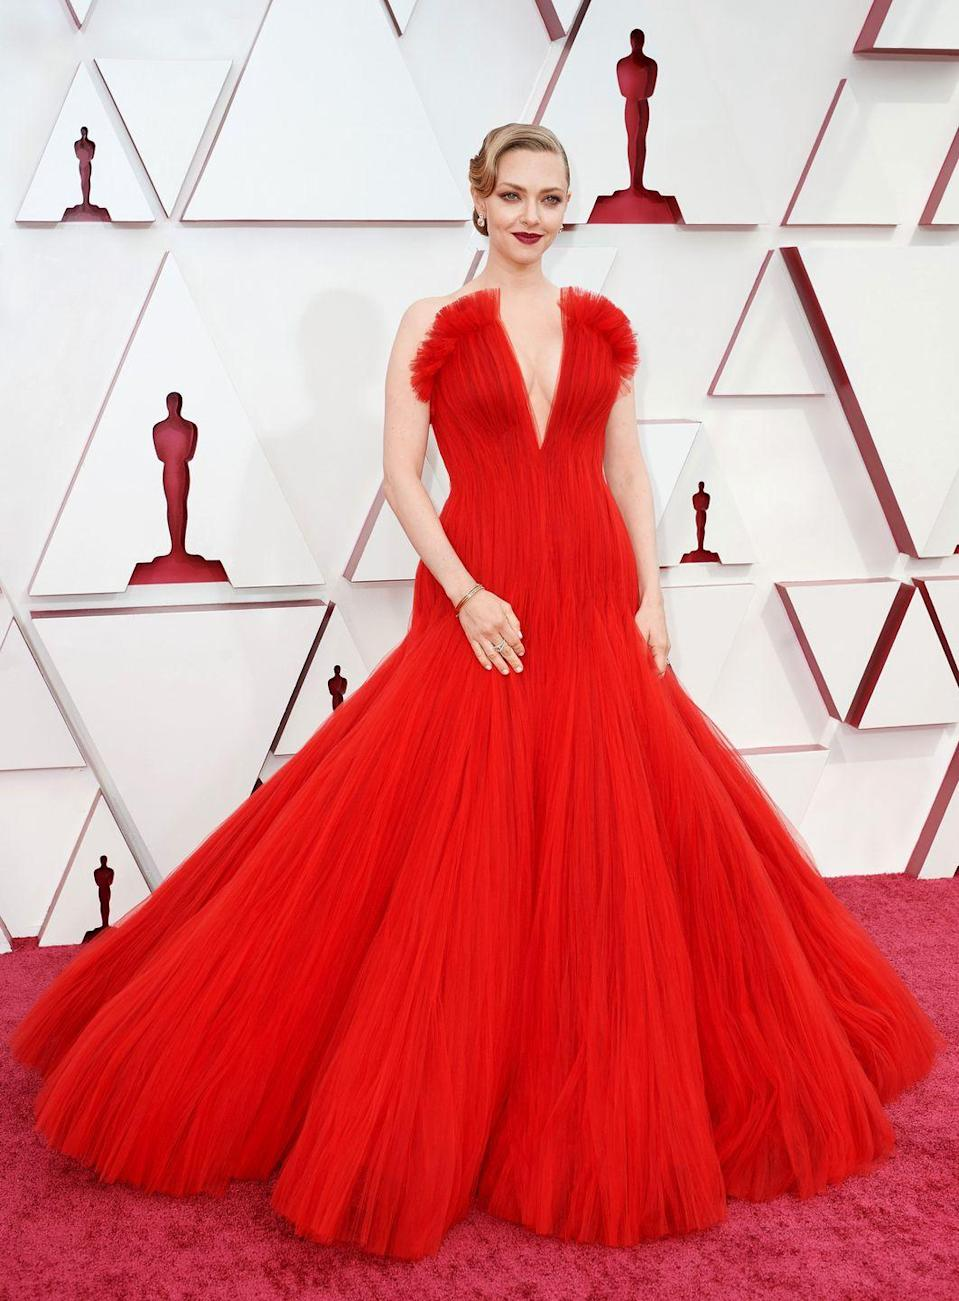 <p>The Academy Awards often calls for the most dramatic gowns from the couture catwalks and this was certainly the case for Amanda Seyfried and her stylist Elizabeth Stewart, who chose this beautiful red tulle design by Giorgio Armani Privé. The actress complemented the old Hollywood glamour of the gown with a matching red lip and a wavy updo.</p>